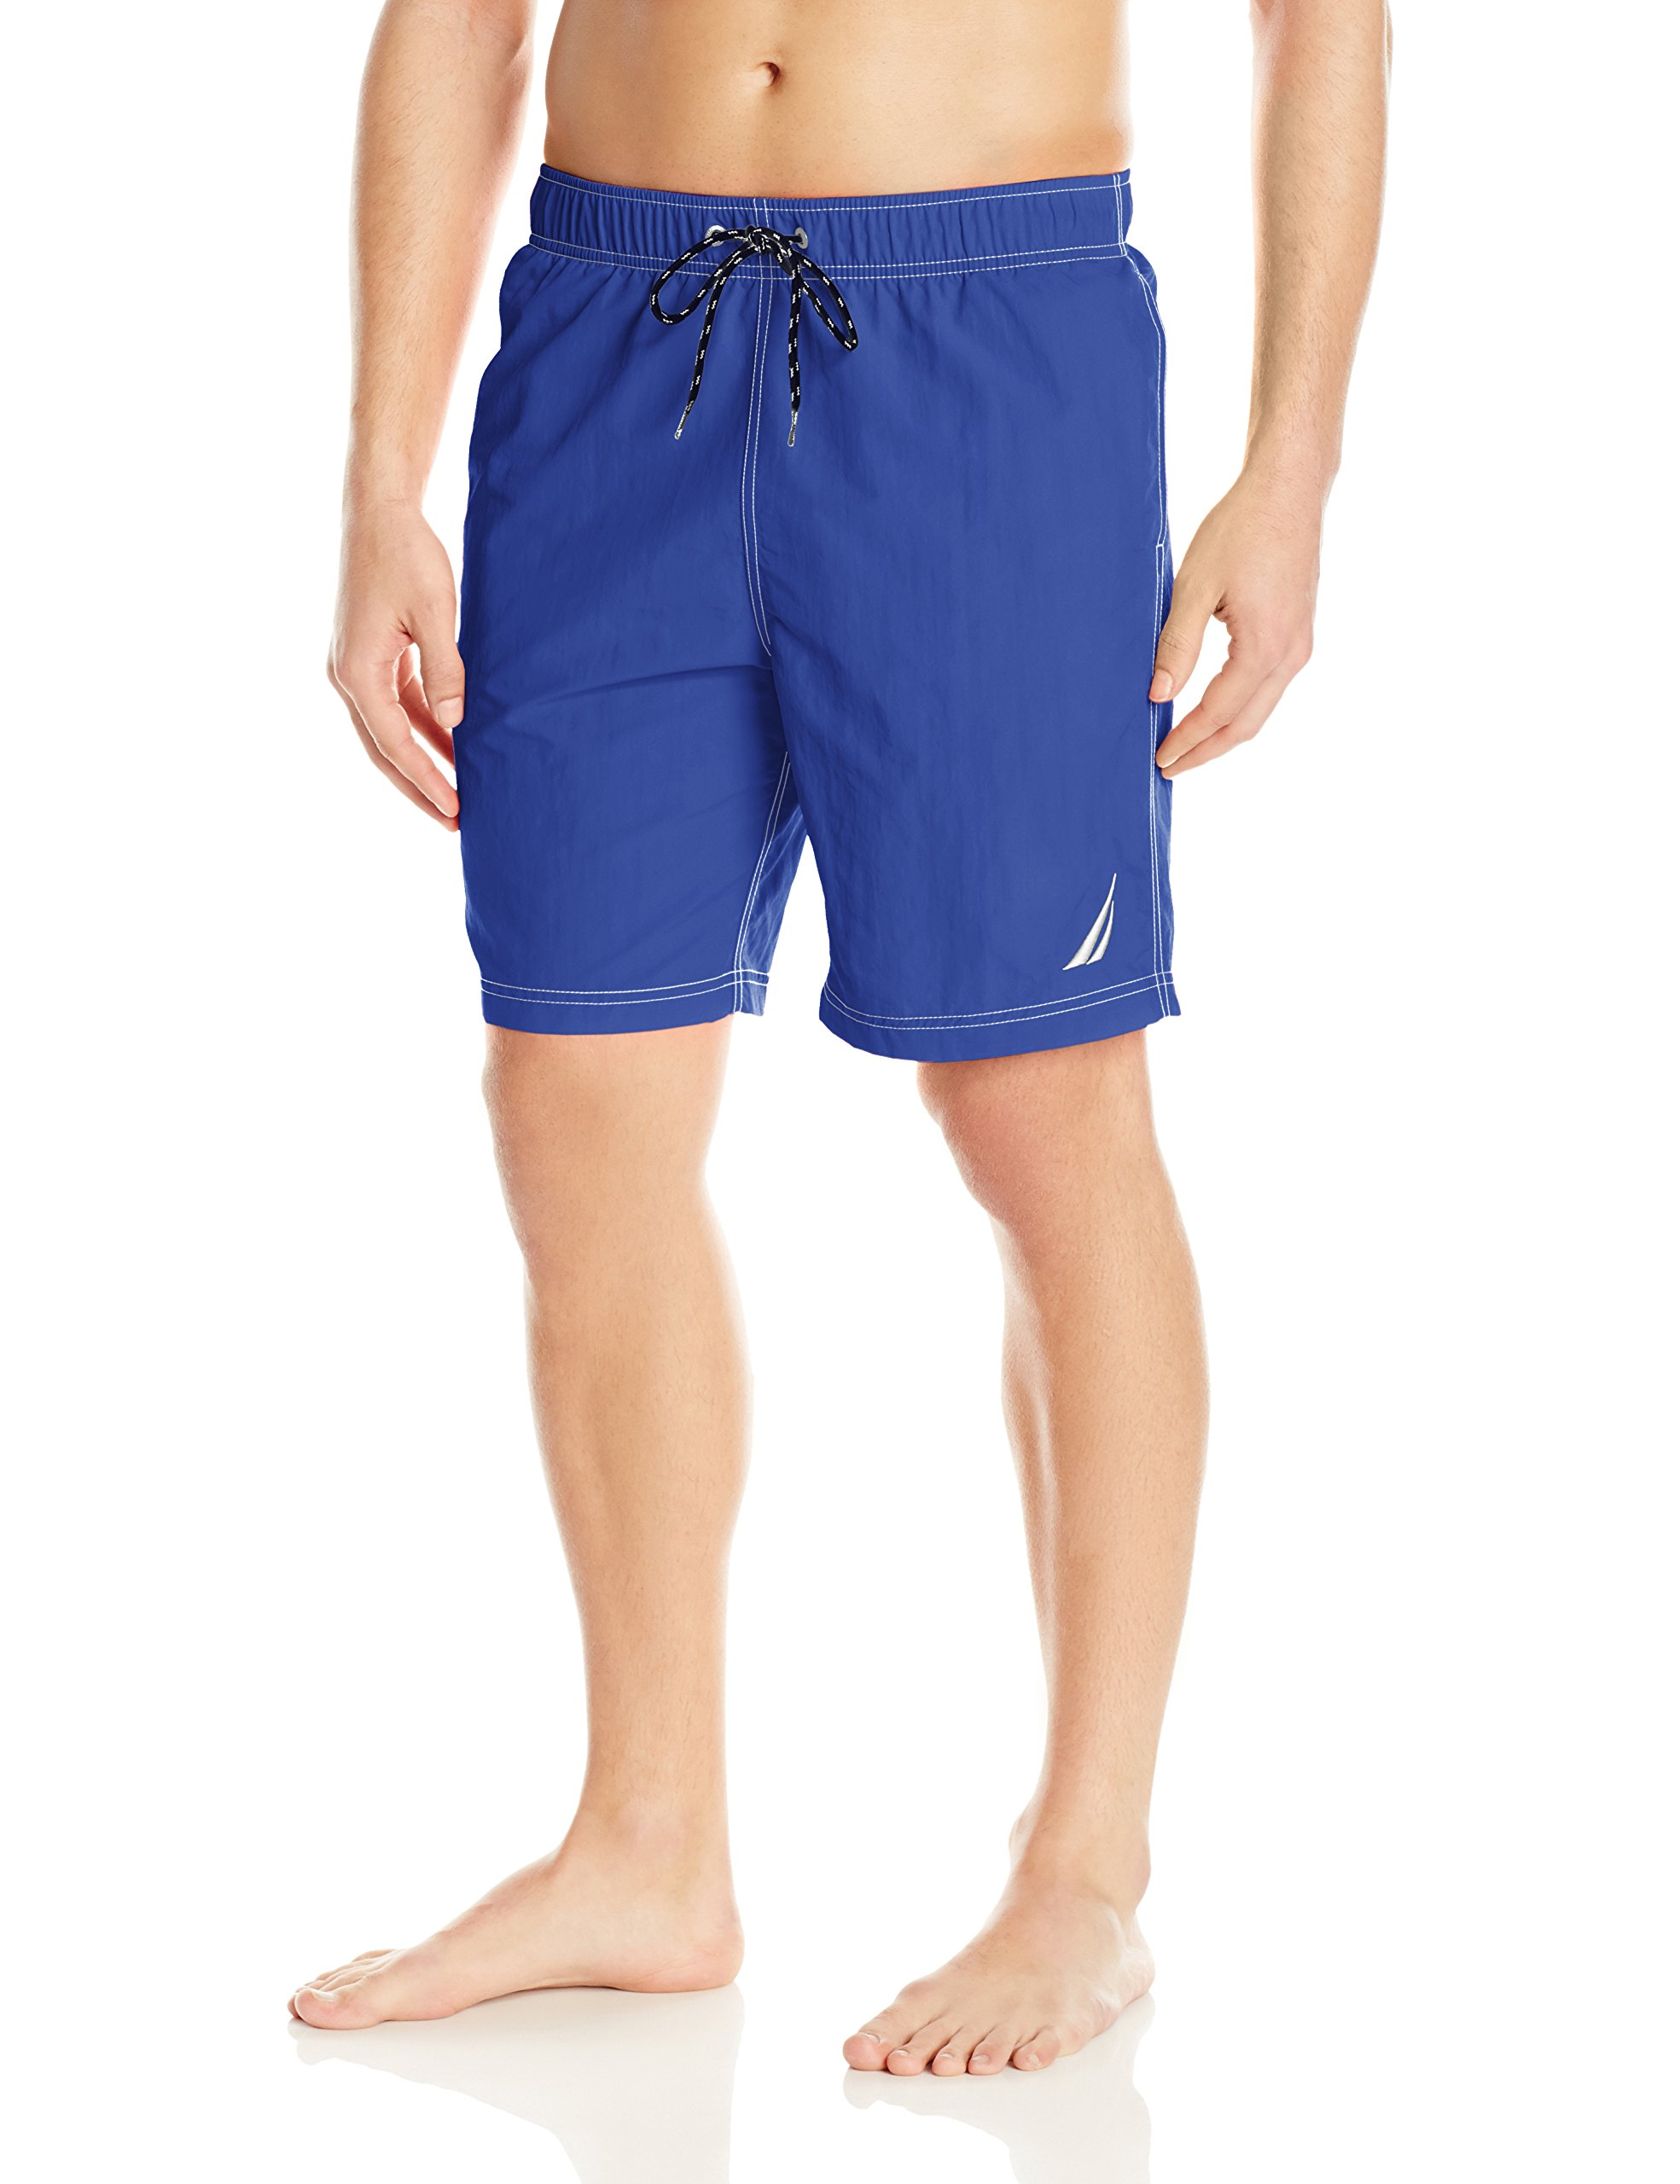 Nautica Men's Standard Solid Quick Dry Classic Logo Swim Trunk, Bright Cobalt, Large by Nautica